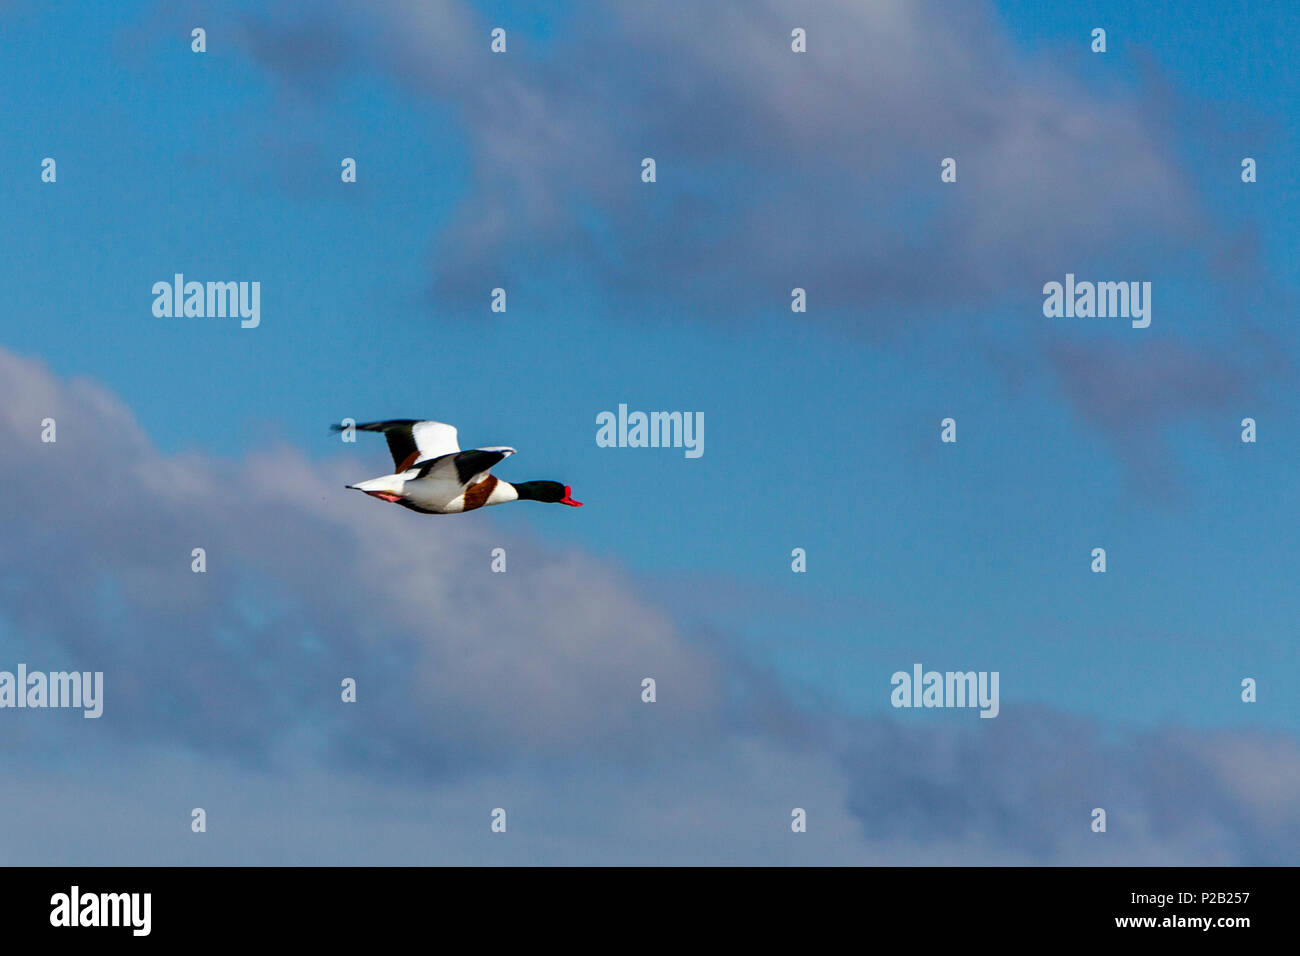 A Shelduck (Tadorna tadorna) in flight above the mudflats of the River Exe near Topsham, Devon, England, UK - Stock Image